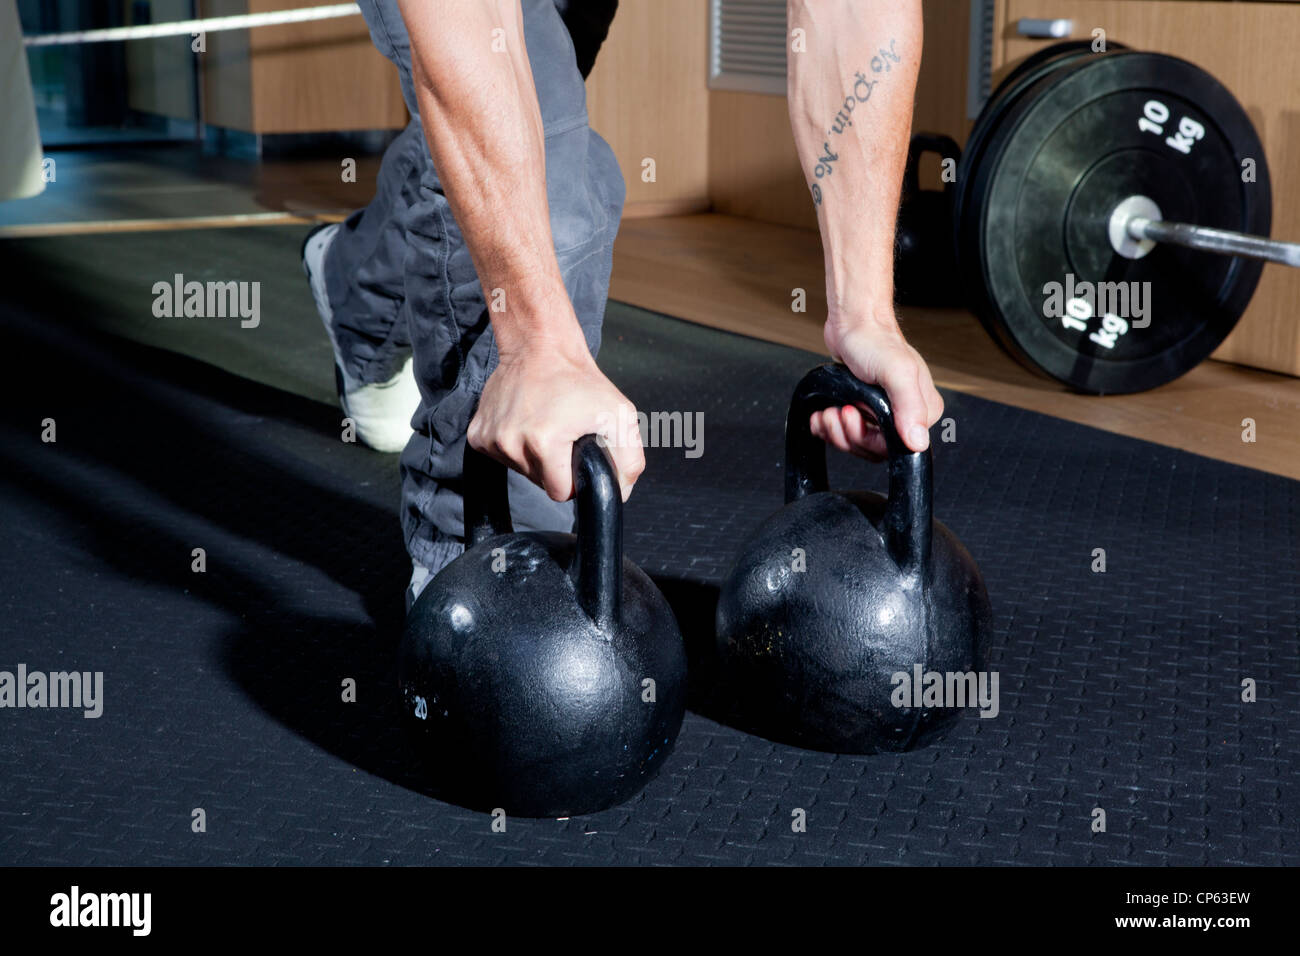 Tattooed arms lifting kettlebells at the gym during a crossfit session - Stock Image